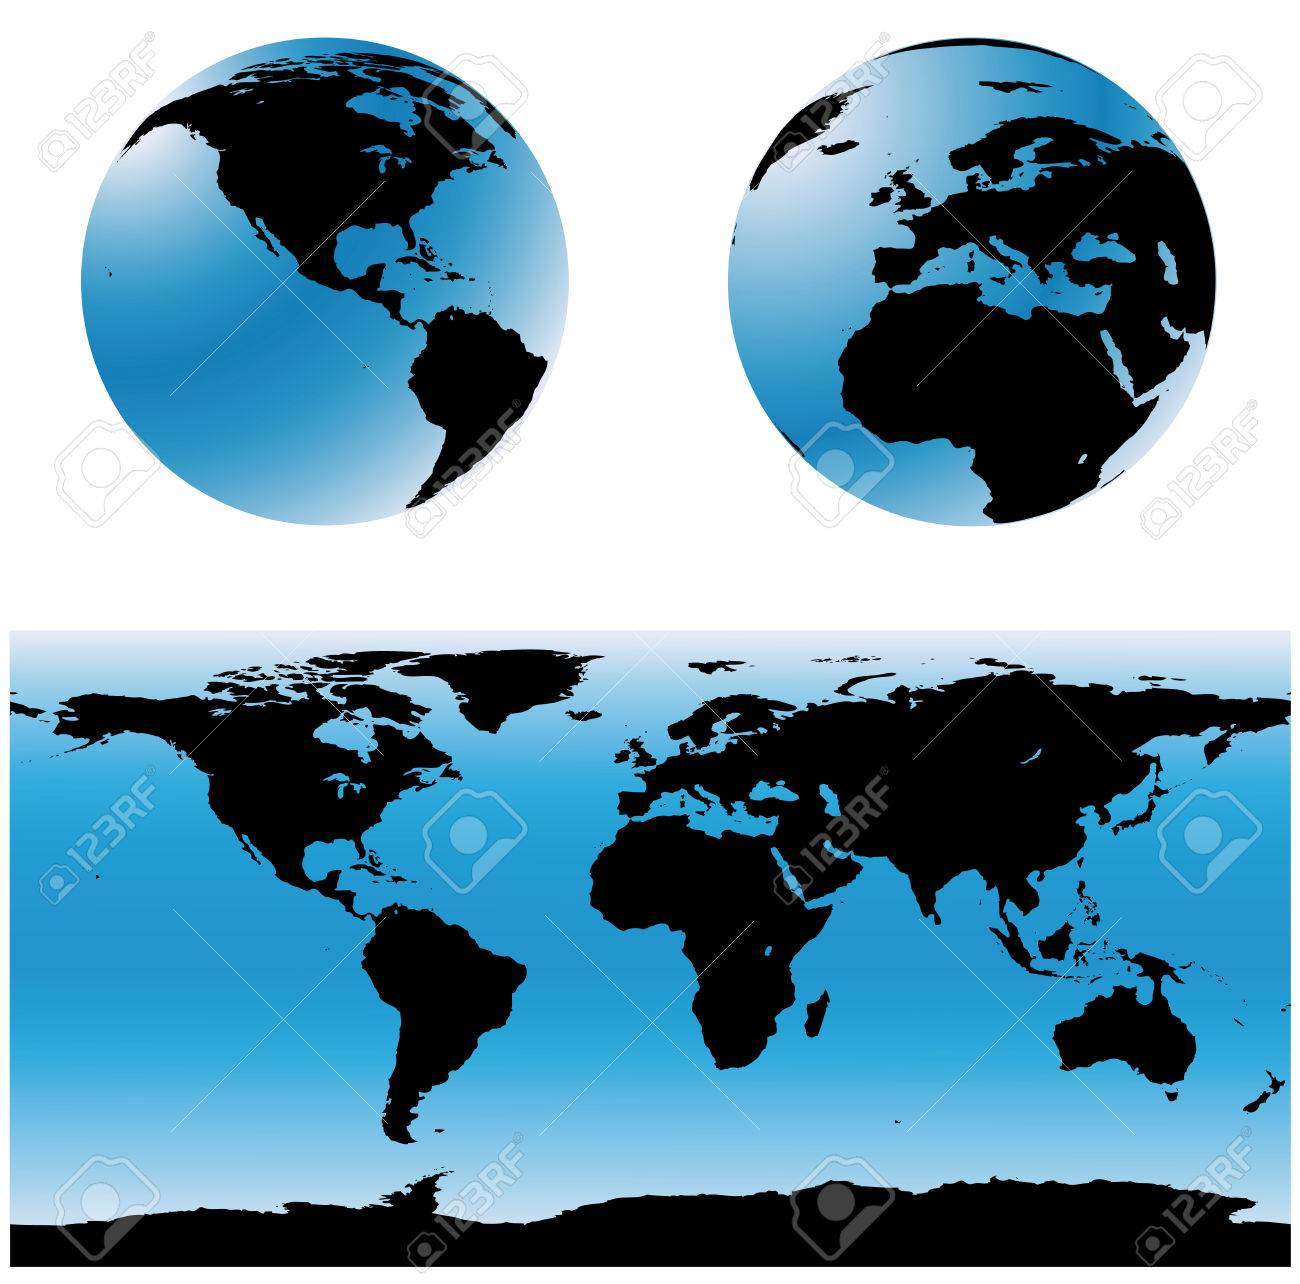 Vectorial World Map Set Two Spheres With USA And Europe Zones - Map of usa with zones